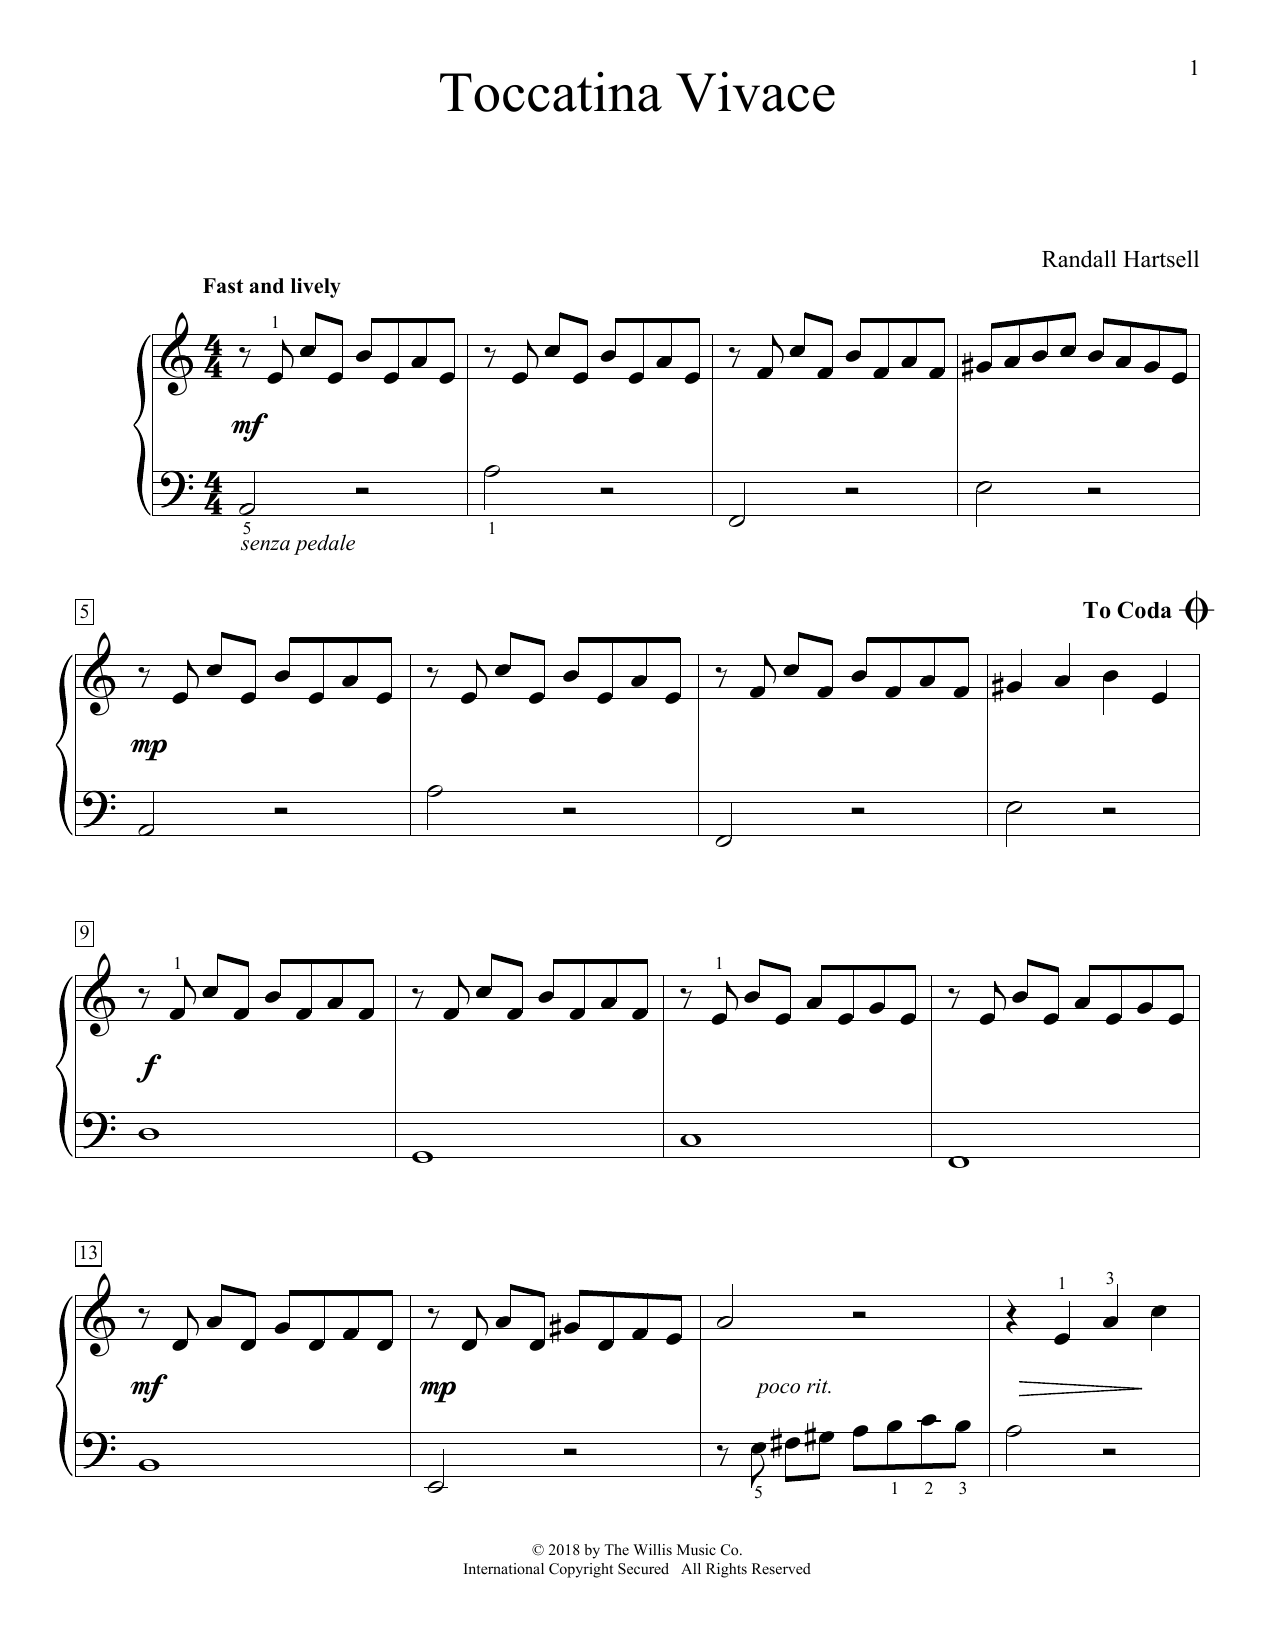 Toccatina Vivace Sheet Music